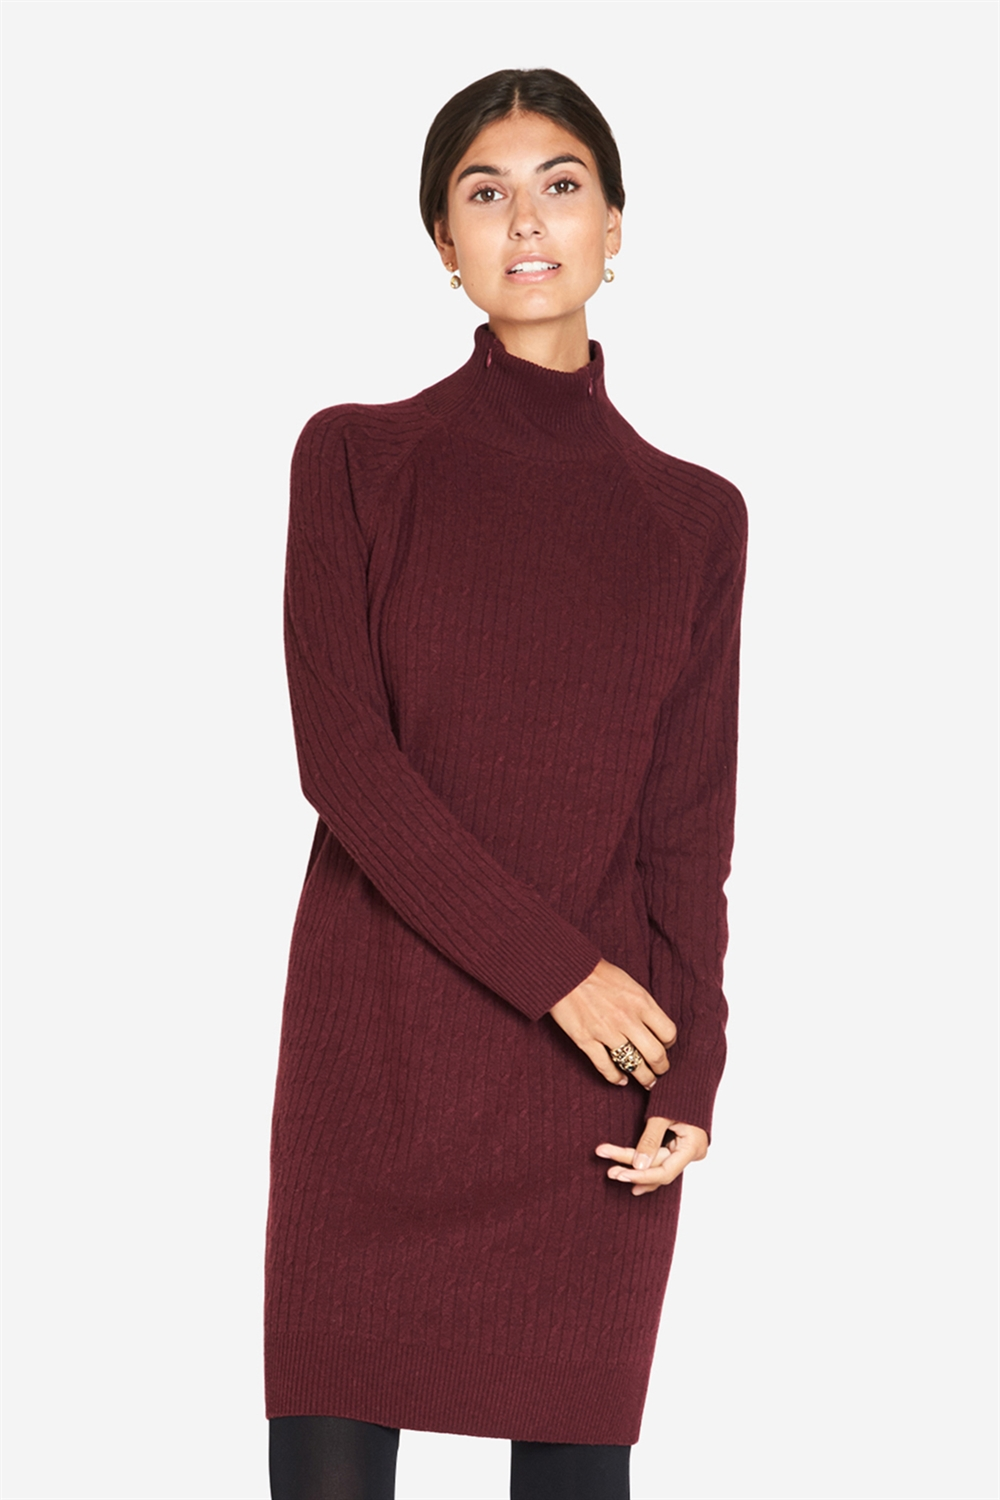 Bordeaux nursing Dress with a high neck for breastfeeding